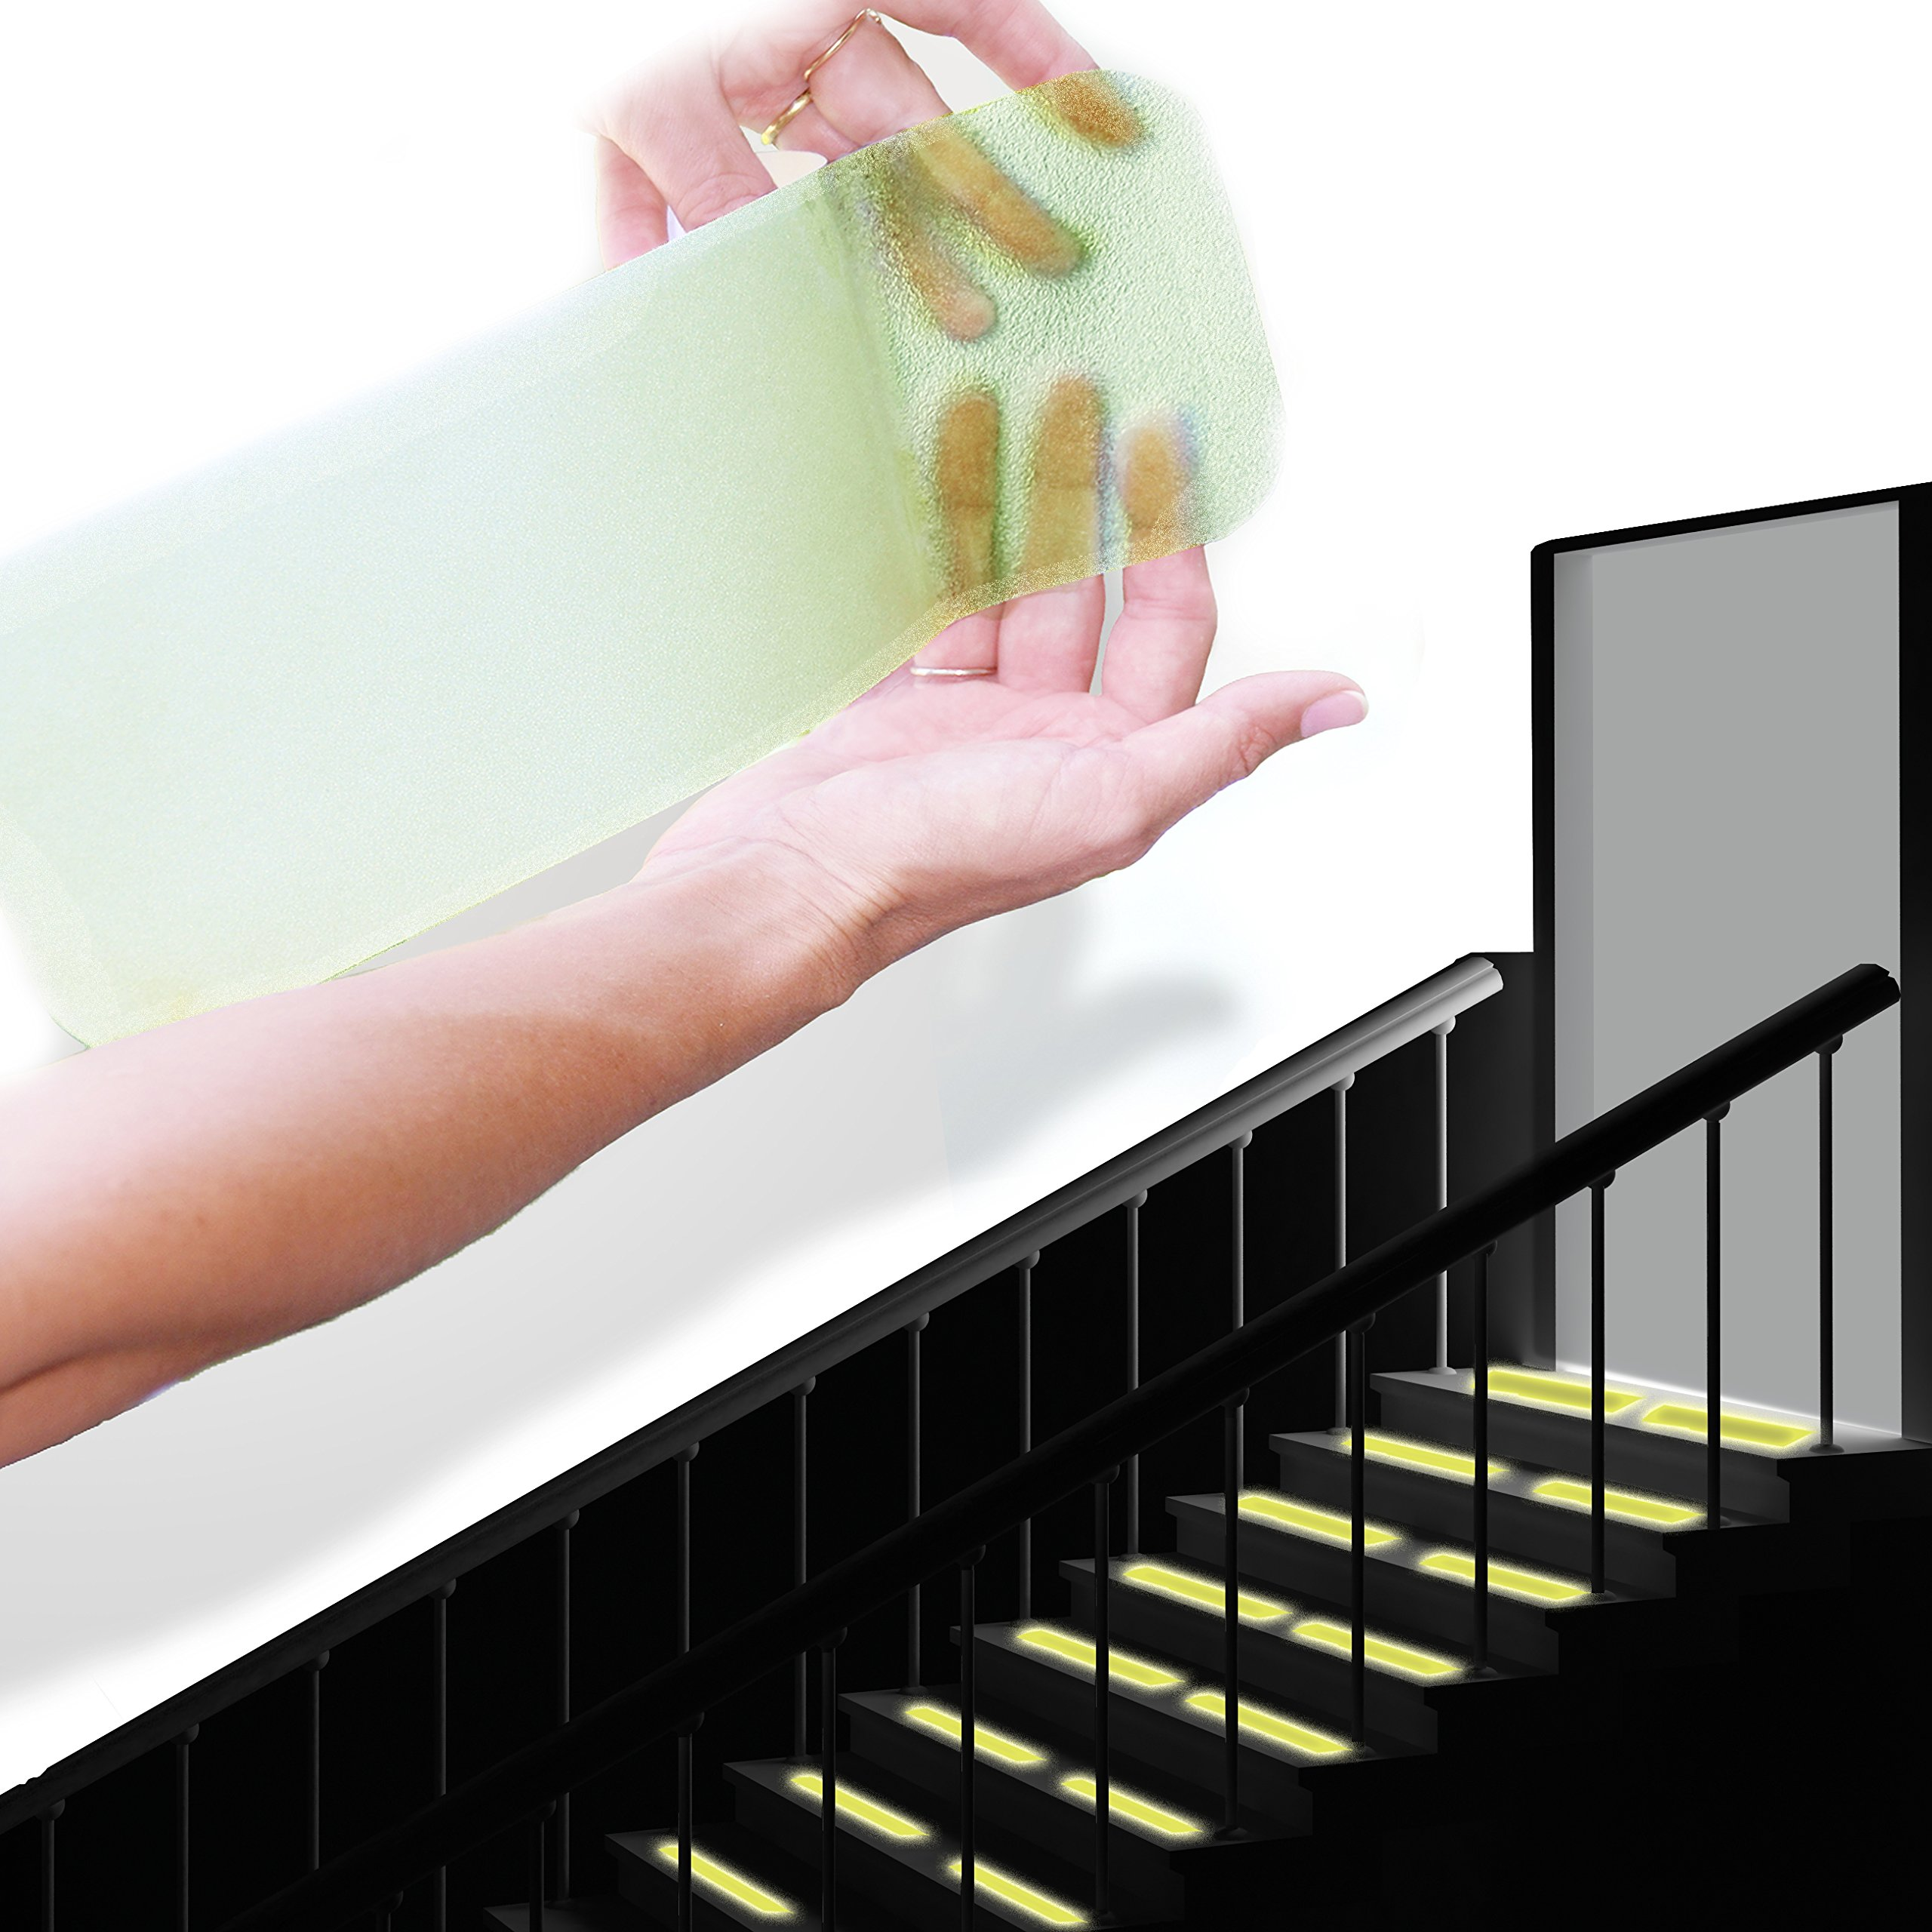 """StepStrips StepTips Anti Slip Tape''Stair Treads'' Clear & Glow in The Dark for Safety Non Slip Grip 20 Pack 4""""x12"""" Pre Cut Skid Strips Traction Non Abrasive PVC Free for Bare Feet Kids, Elders & Dogs"""